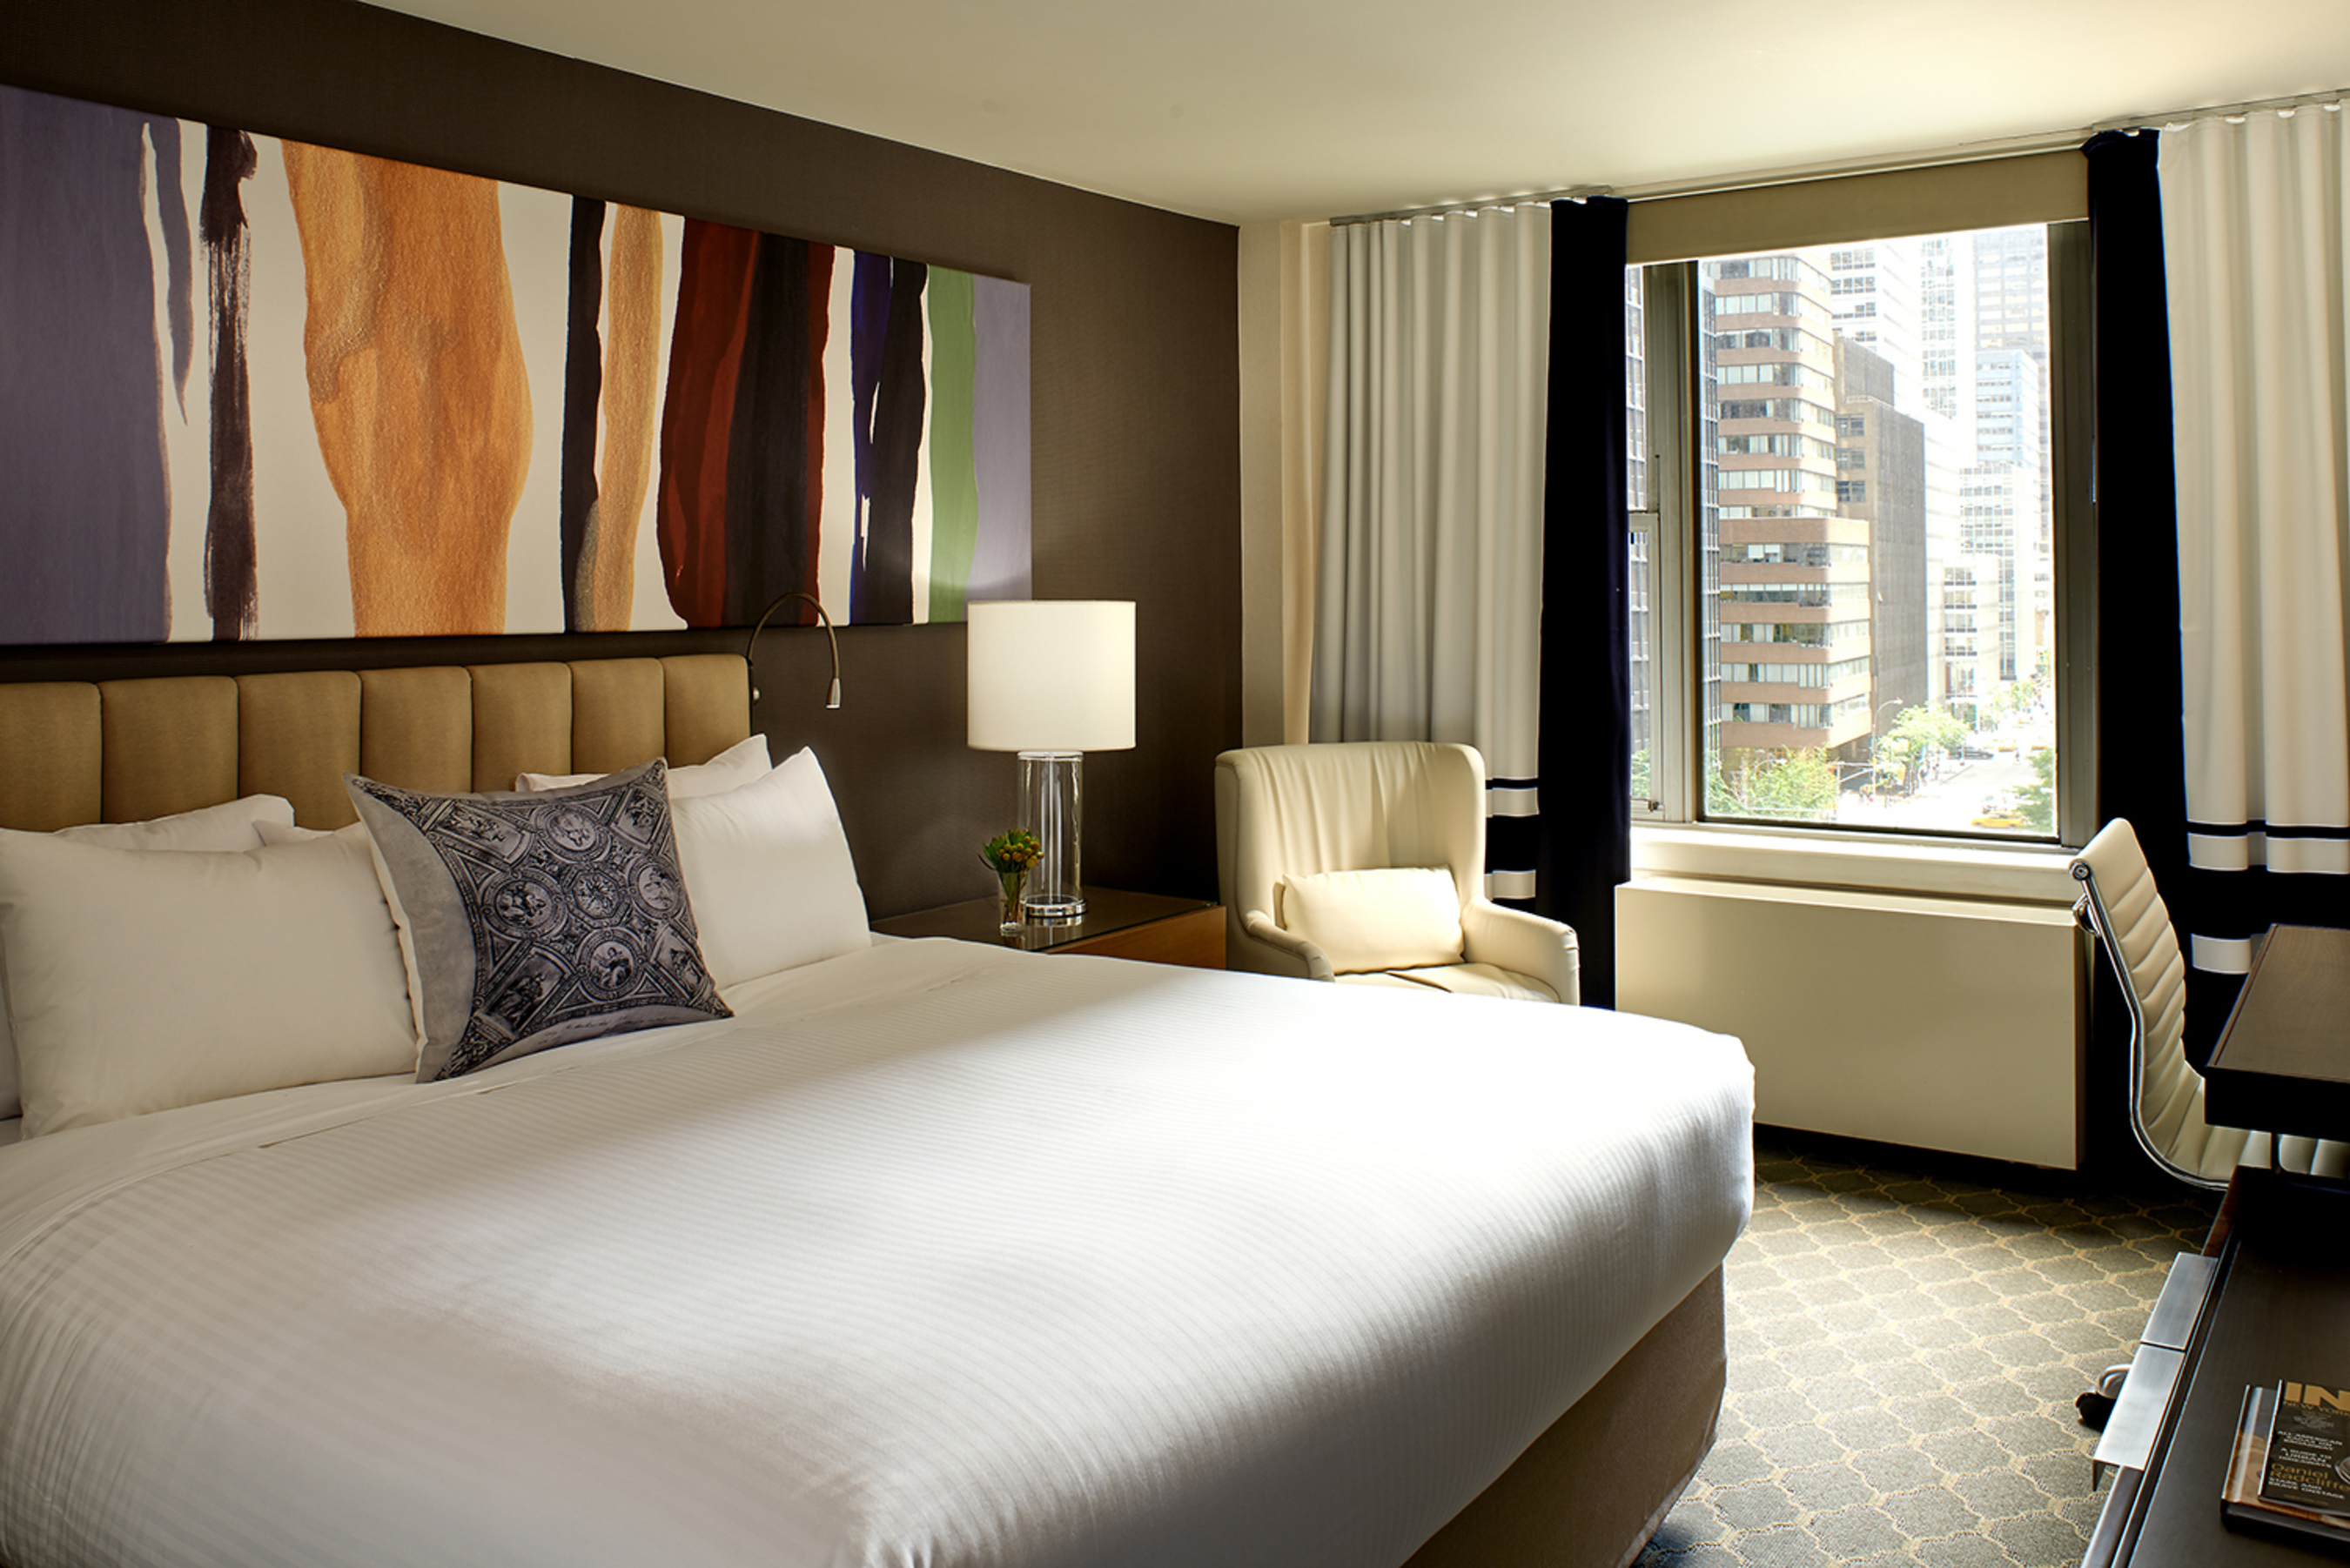 Guest room at Fifty NYC, an Affinia Hotel